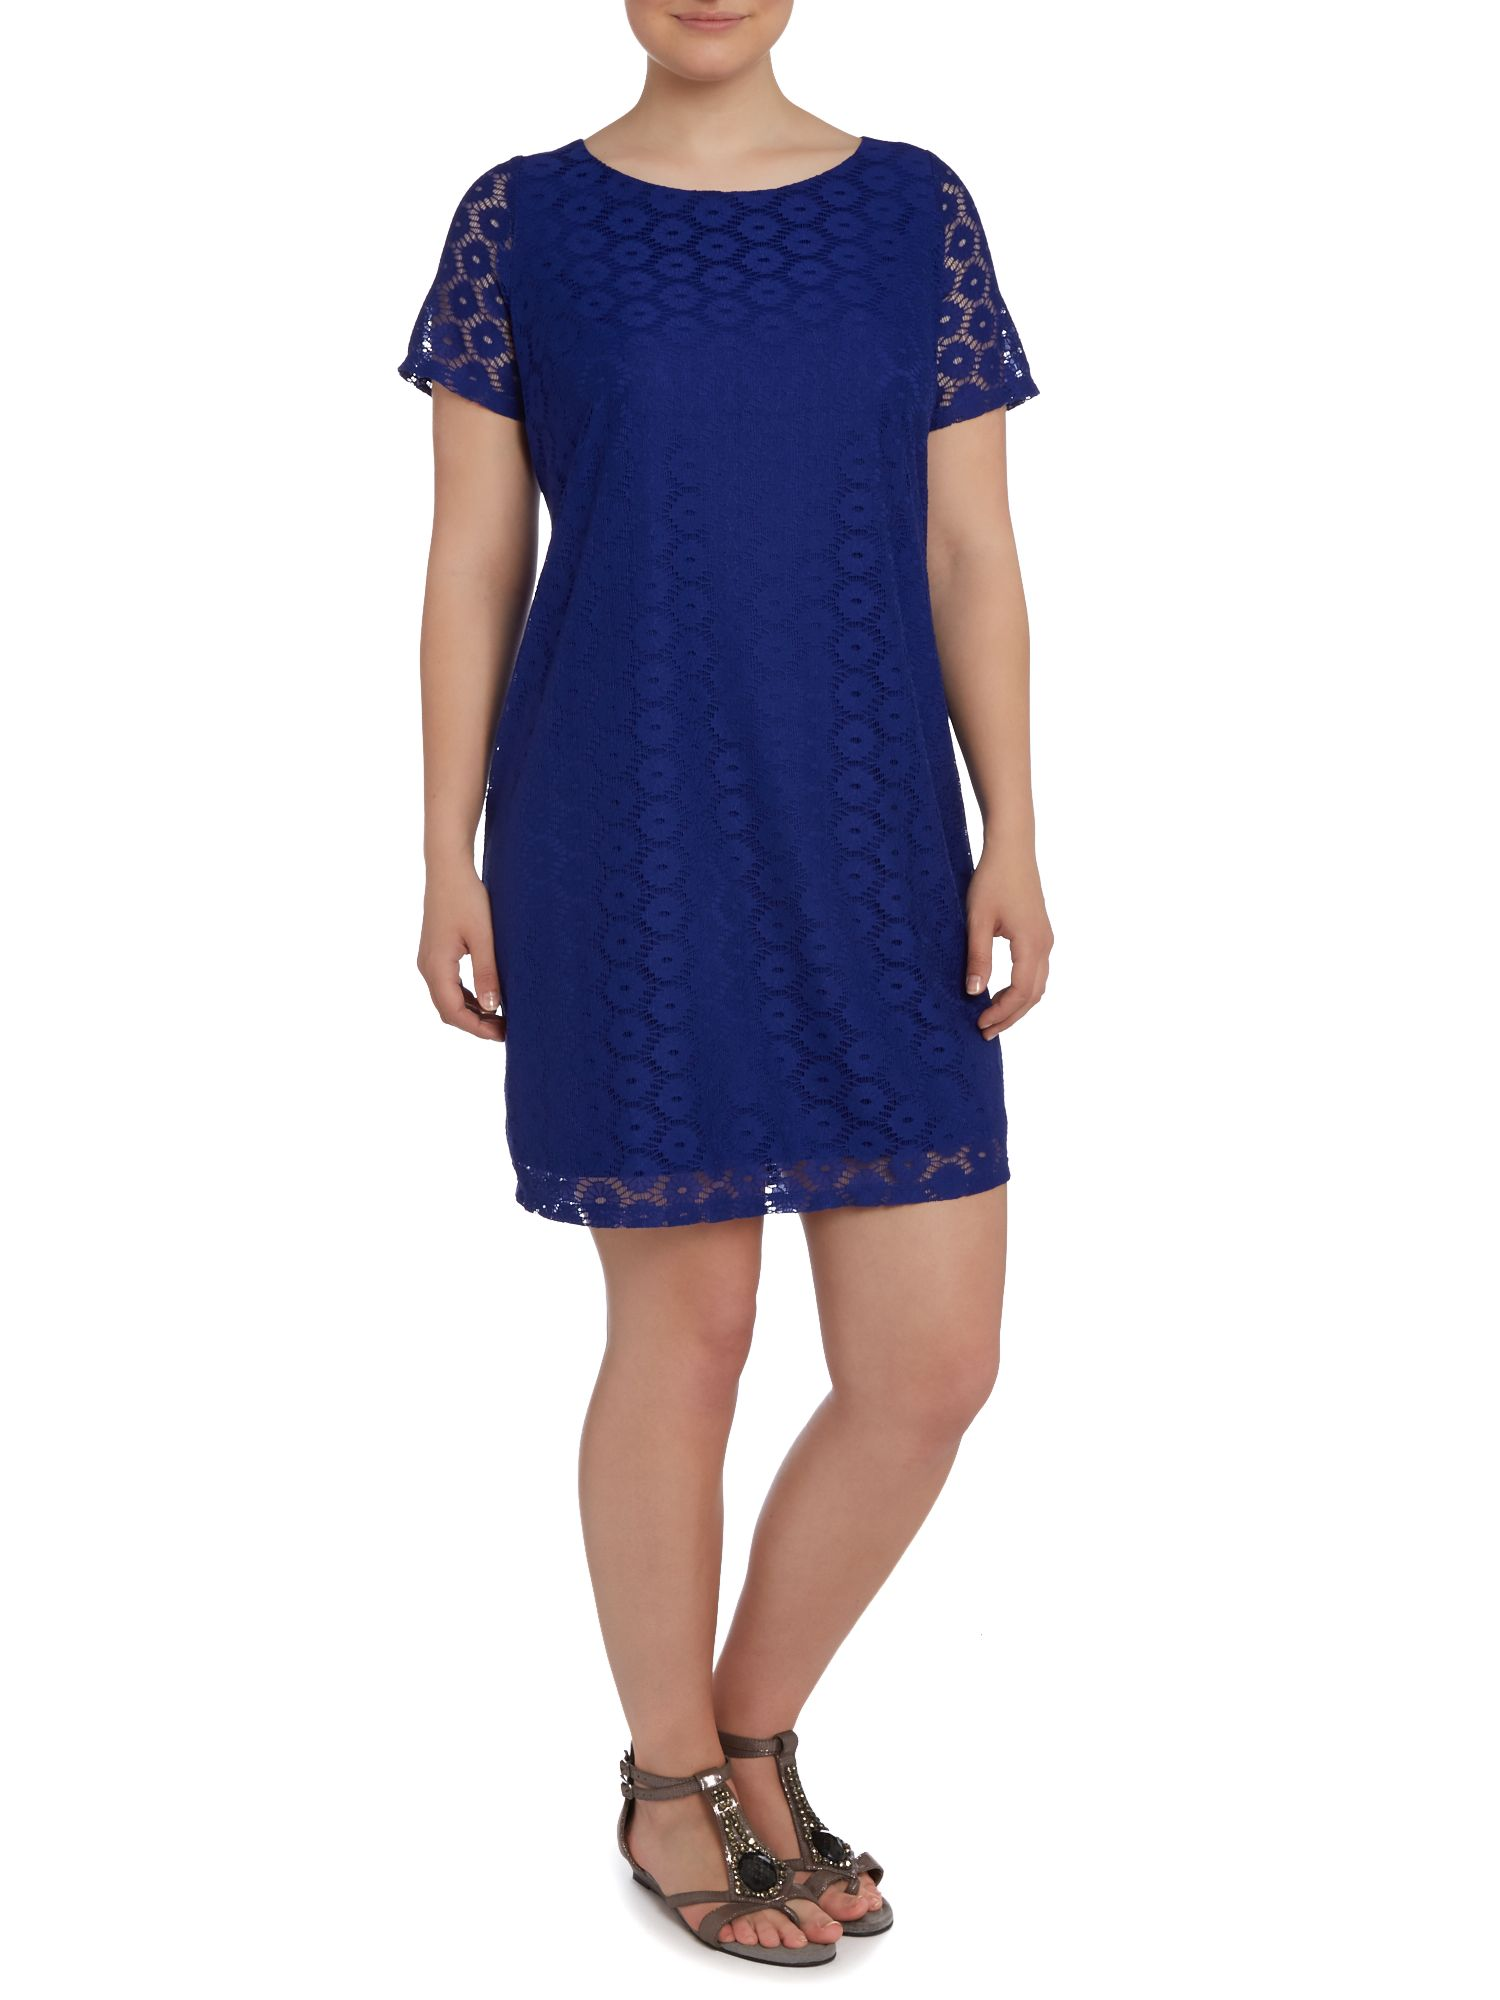 Blue lace tunic